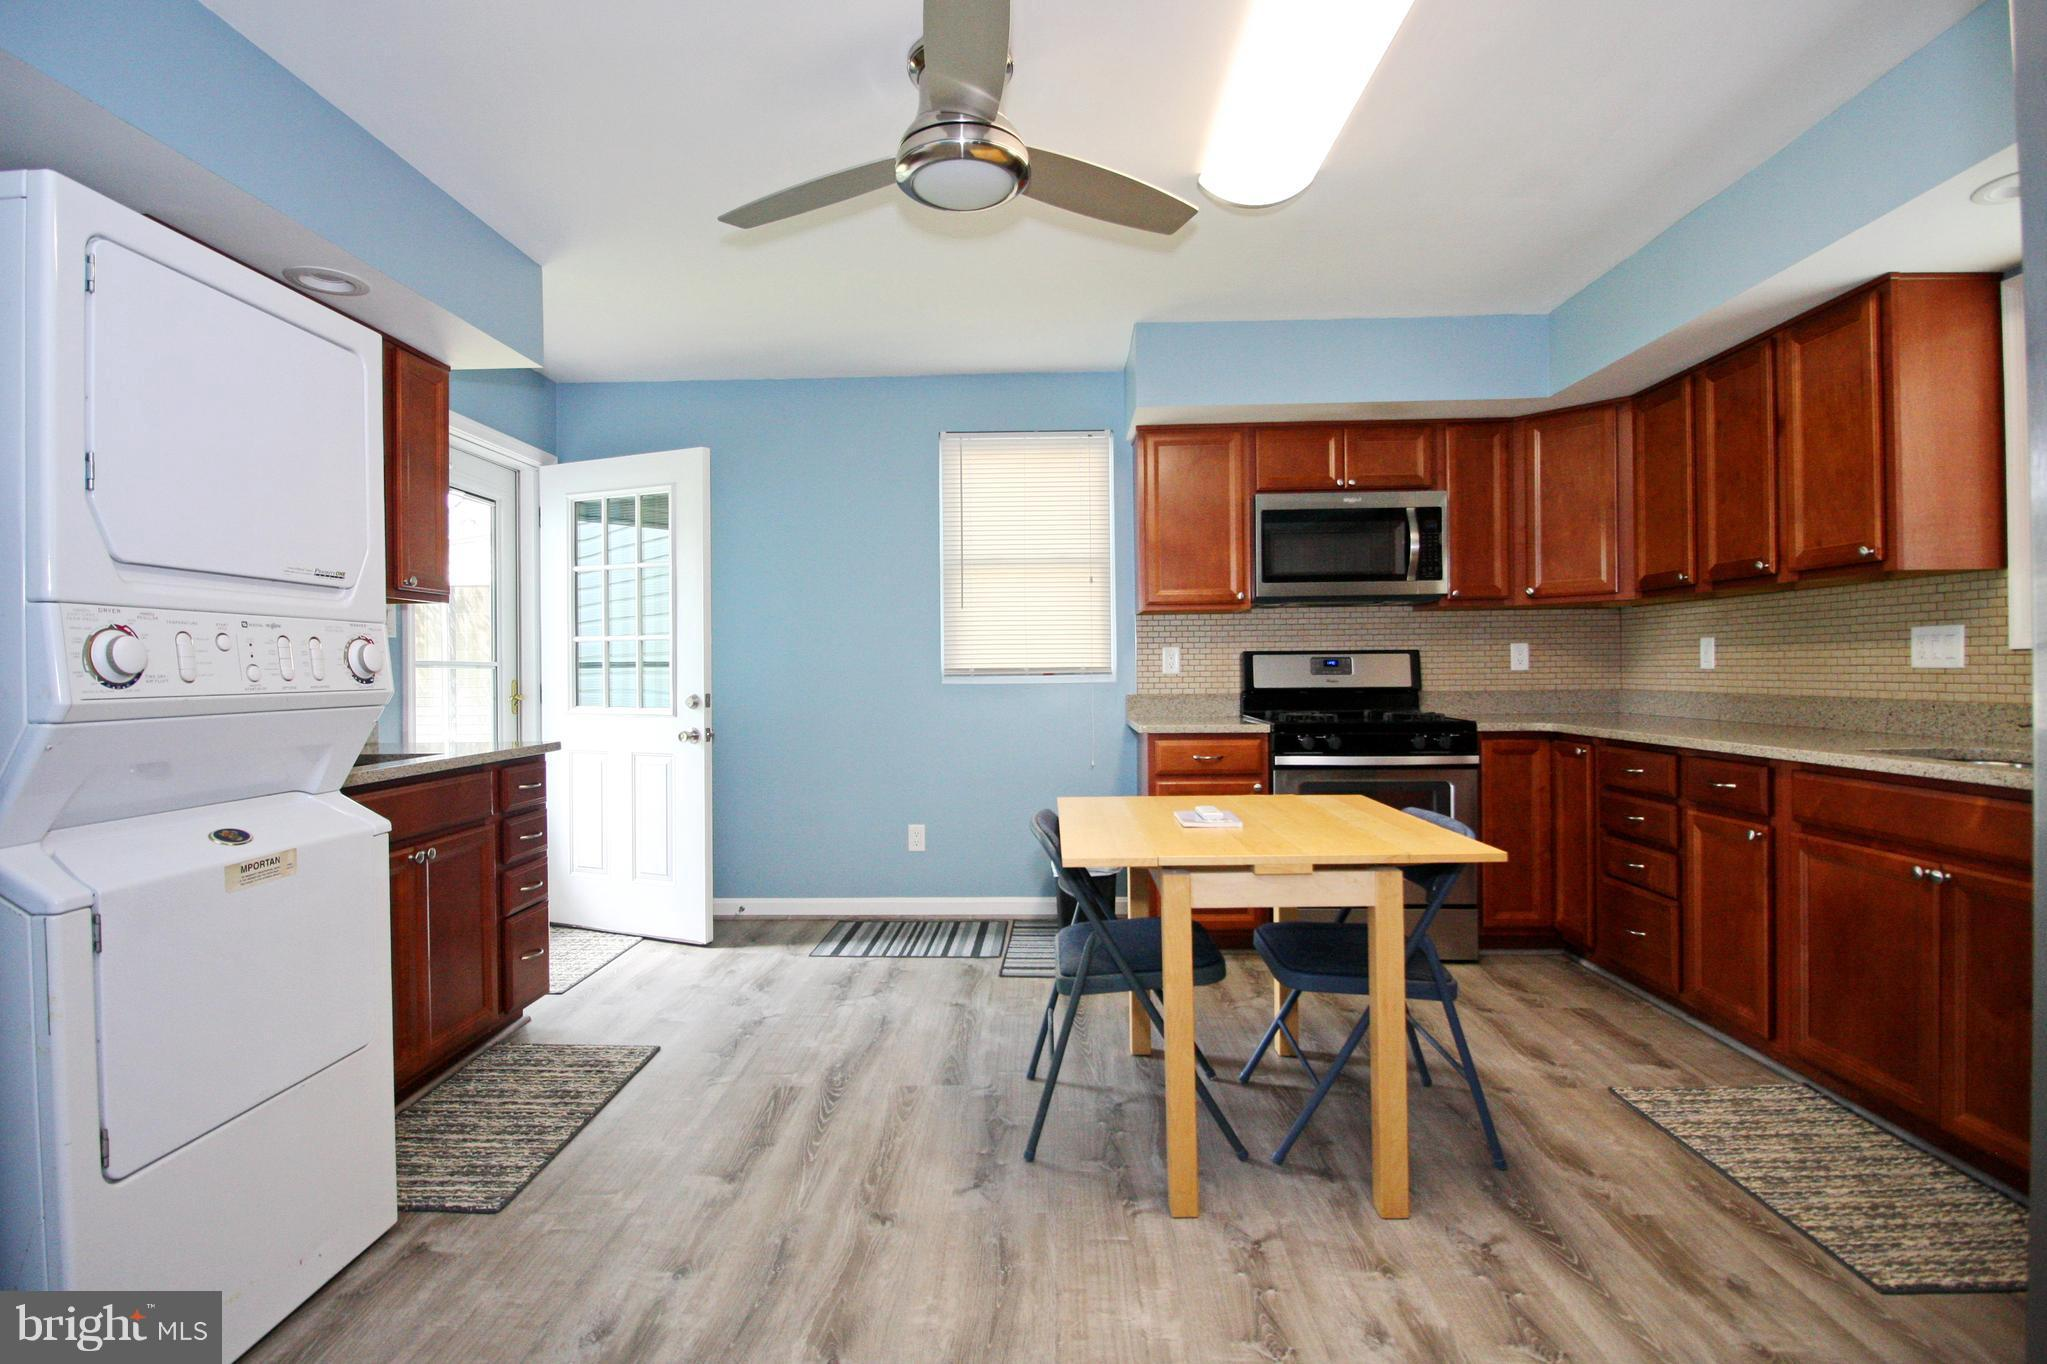 8233 PEACH ORCHARD ROAD, Dundalk, MD 21222, MLS # 1002218232 | RE ...